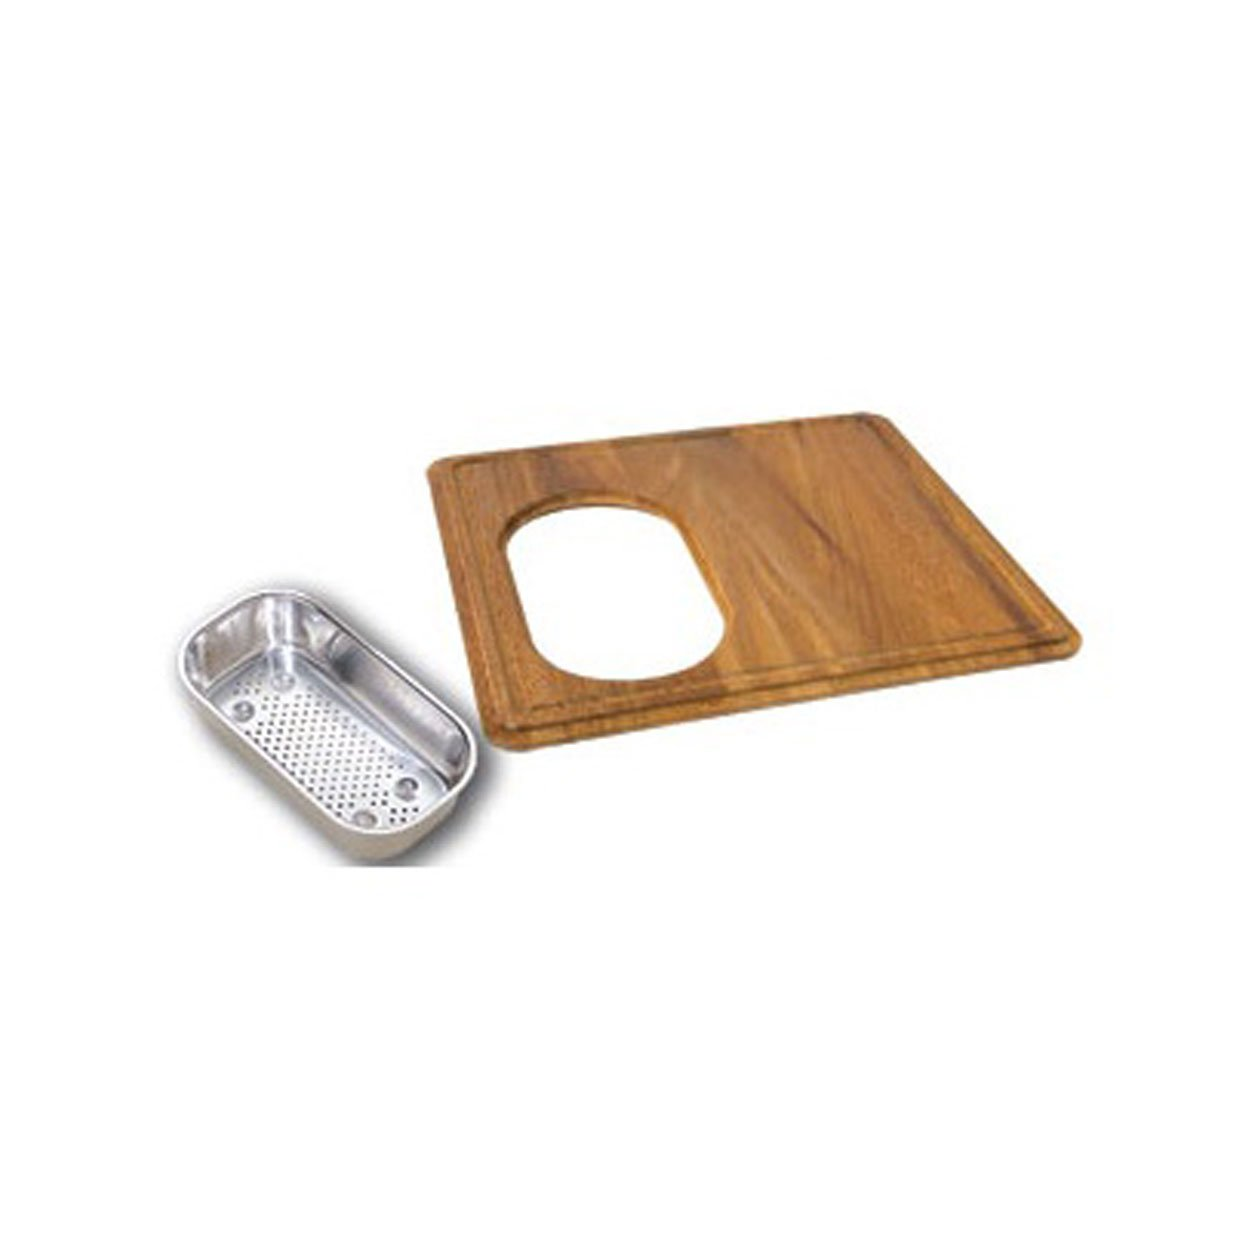 Franke PS30-45SP Professional Cutting Board with Integral Colander for PSX110-30